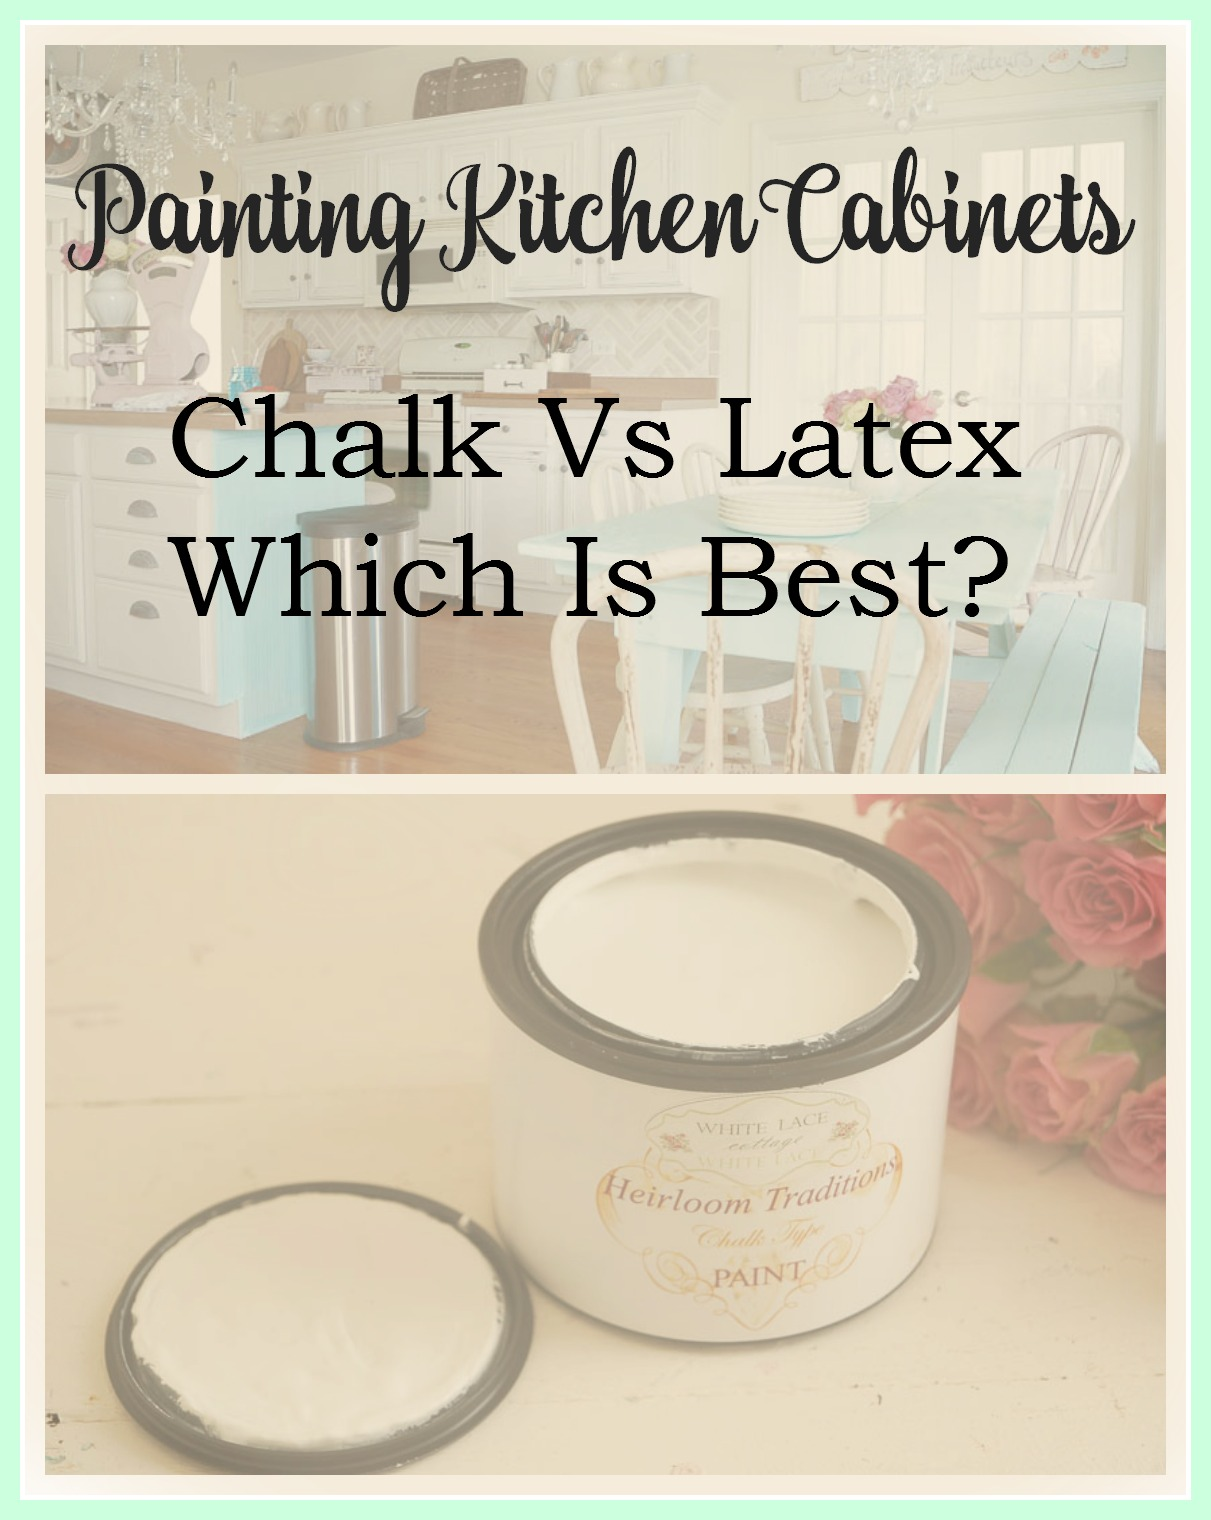 Painting kitchen cabinets chalk or latex for Best latex paint for kitchen cabinets